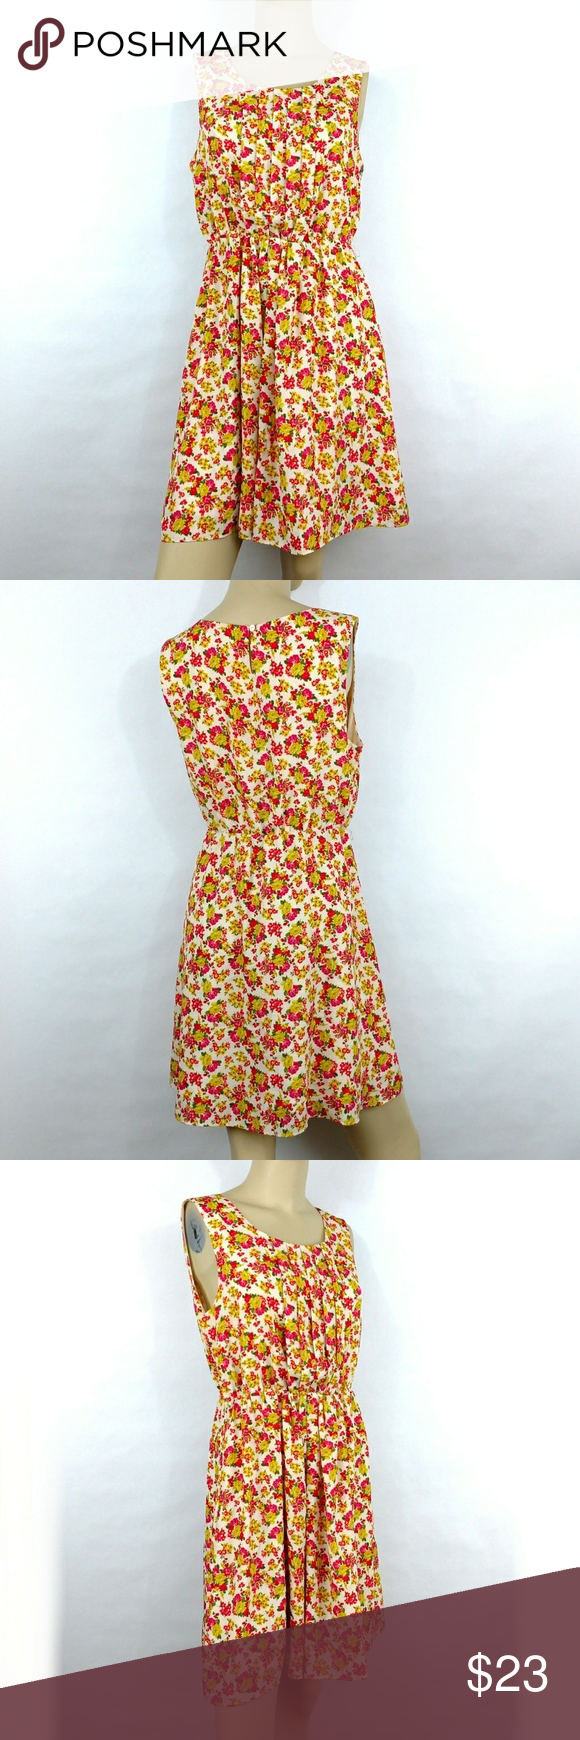 466583d1327 FOREVER 21 New Floral Sleeveless Dress. Medium FOREVER 21 New Floral  Sleeveless Dress. Women s junior Medium New without tags (G) Forever 21  Dresses